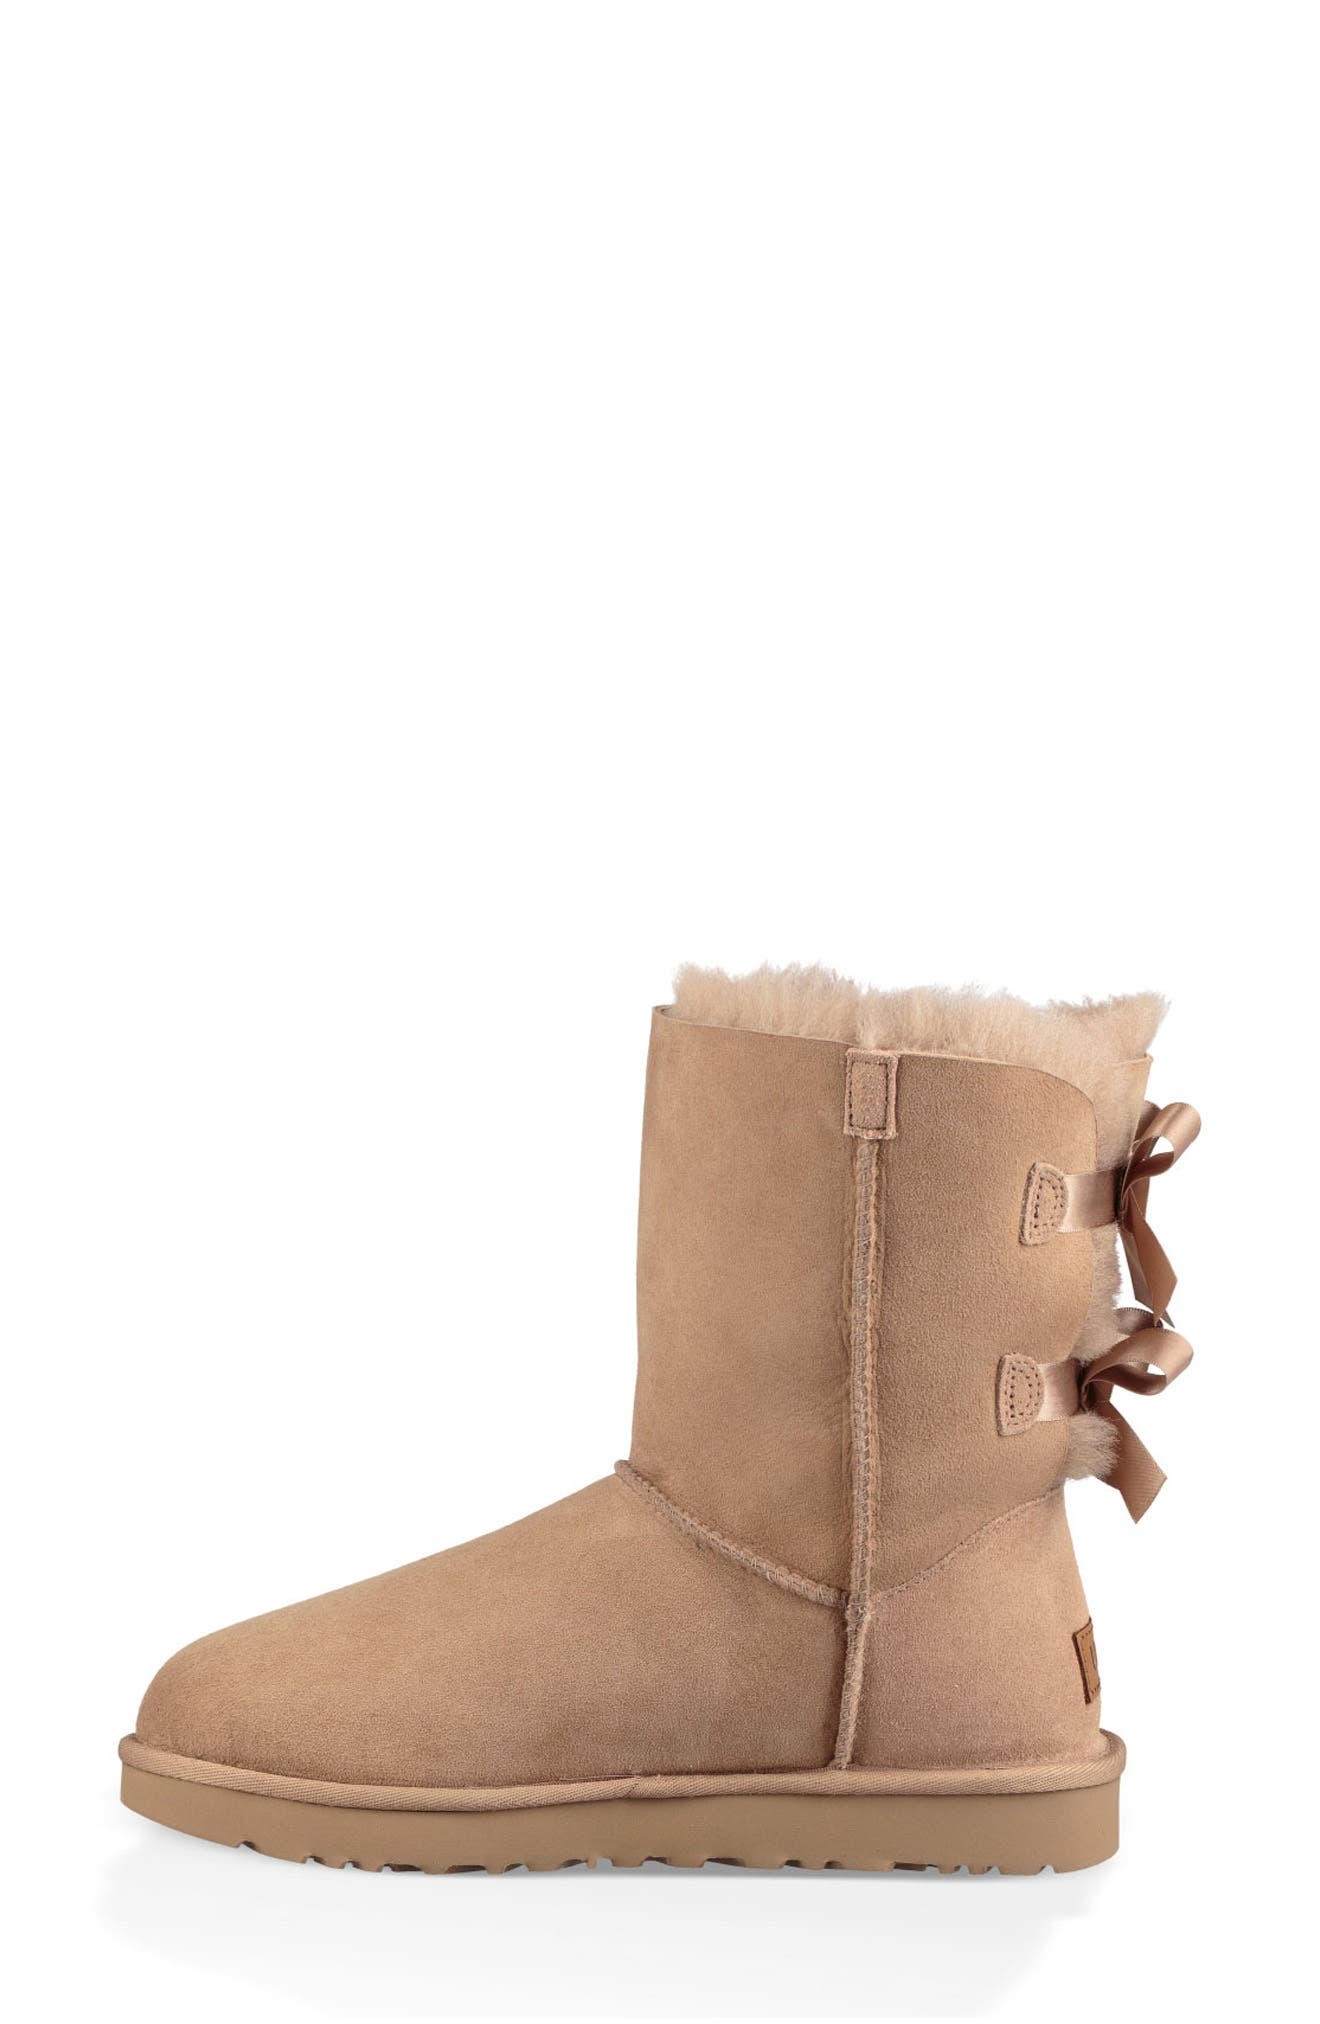 'Bailey Bow II' Boot,                             Alternate thumbnail 6, color,                             FAWN